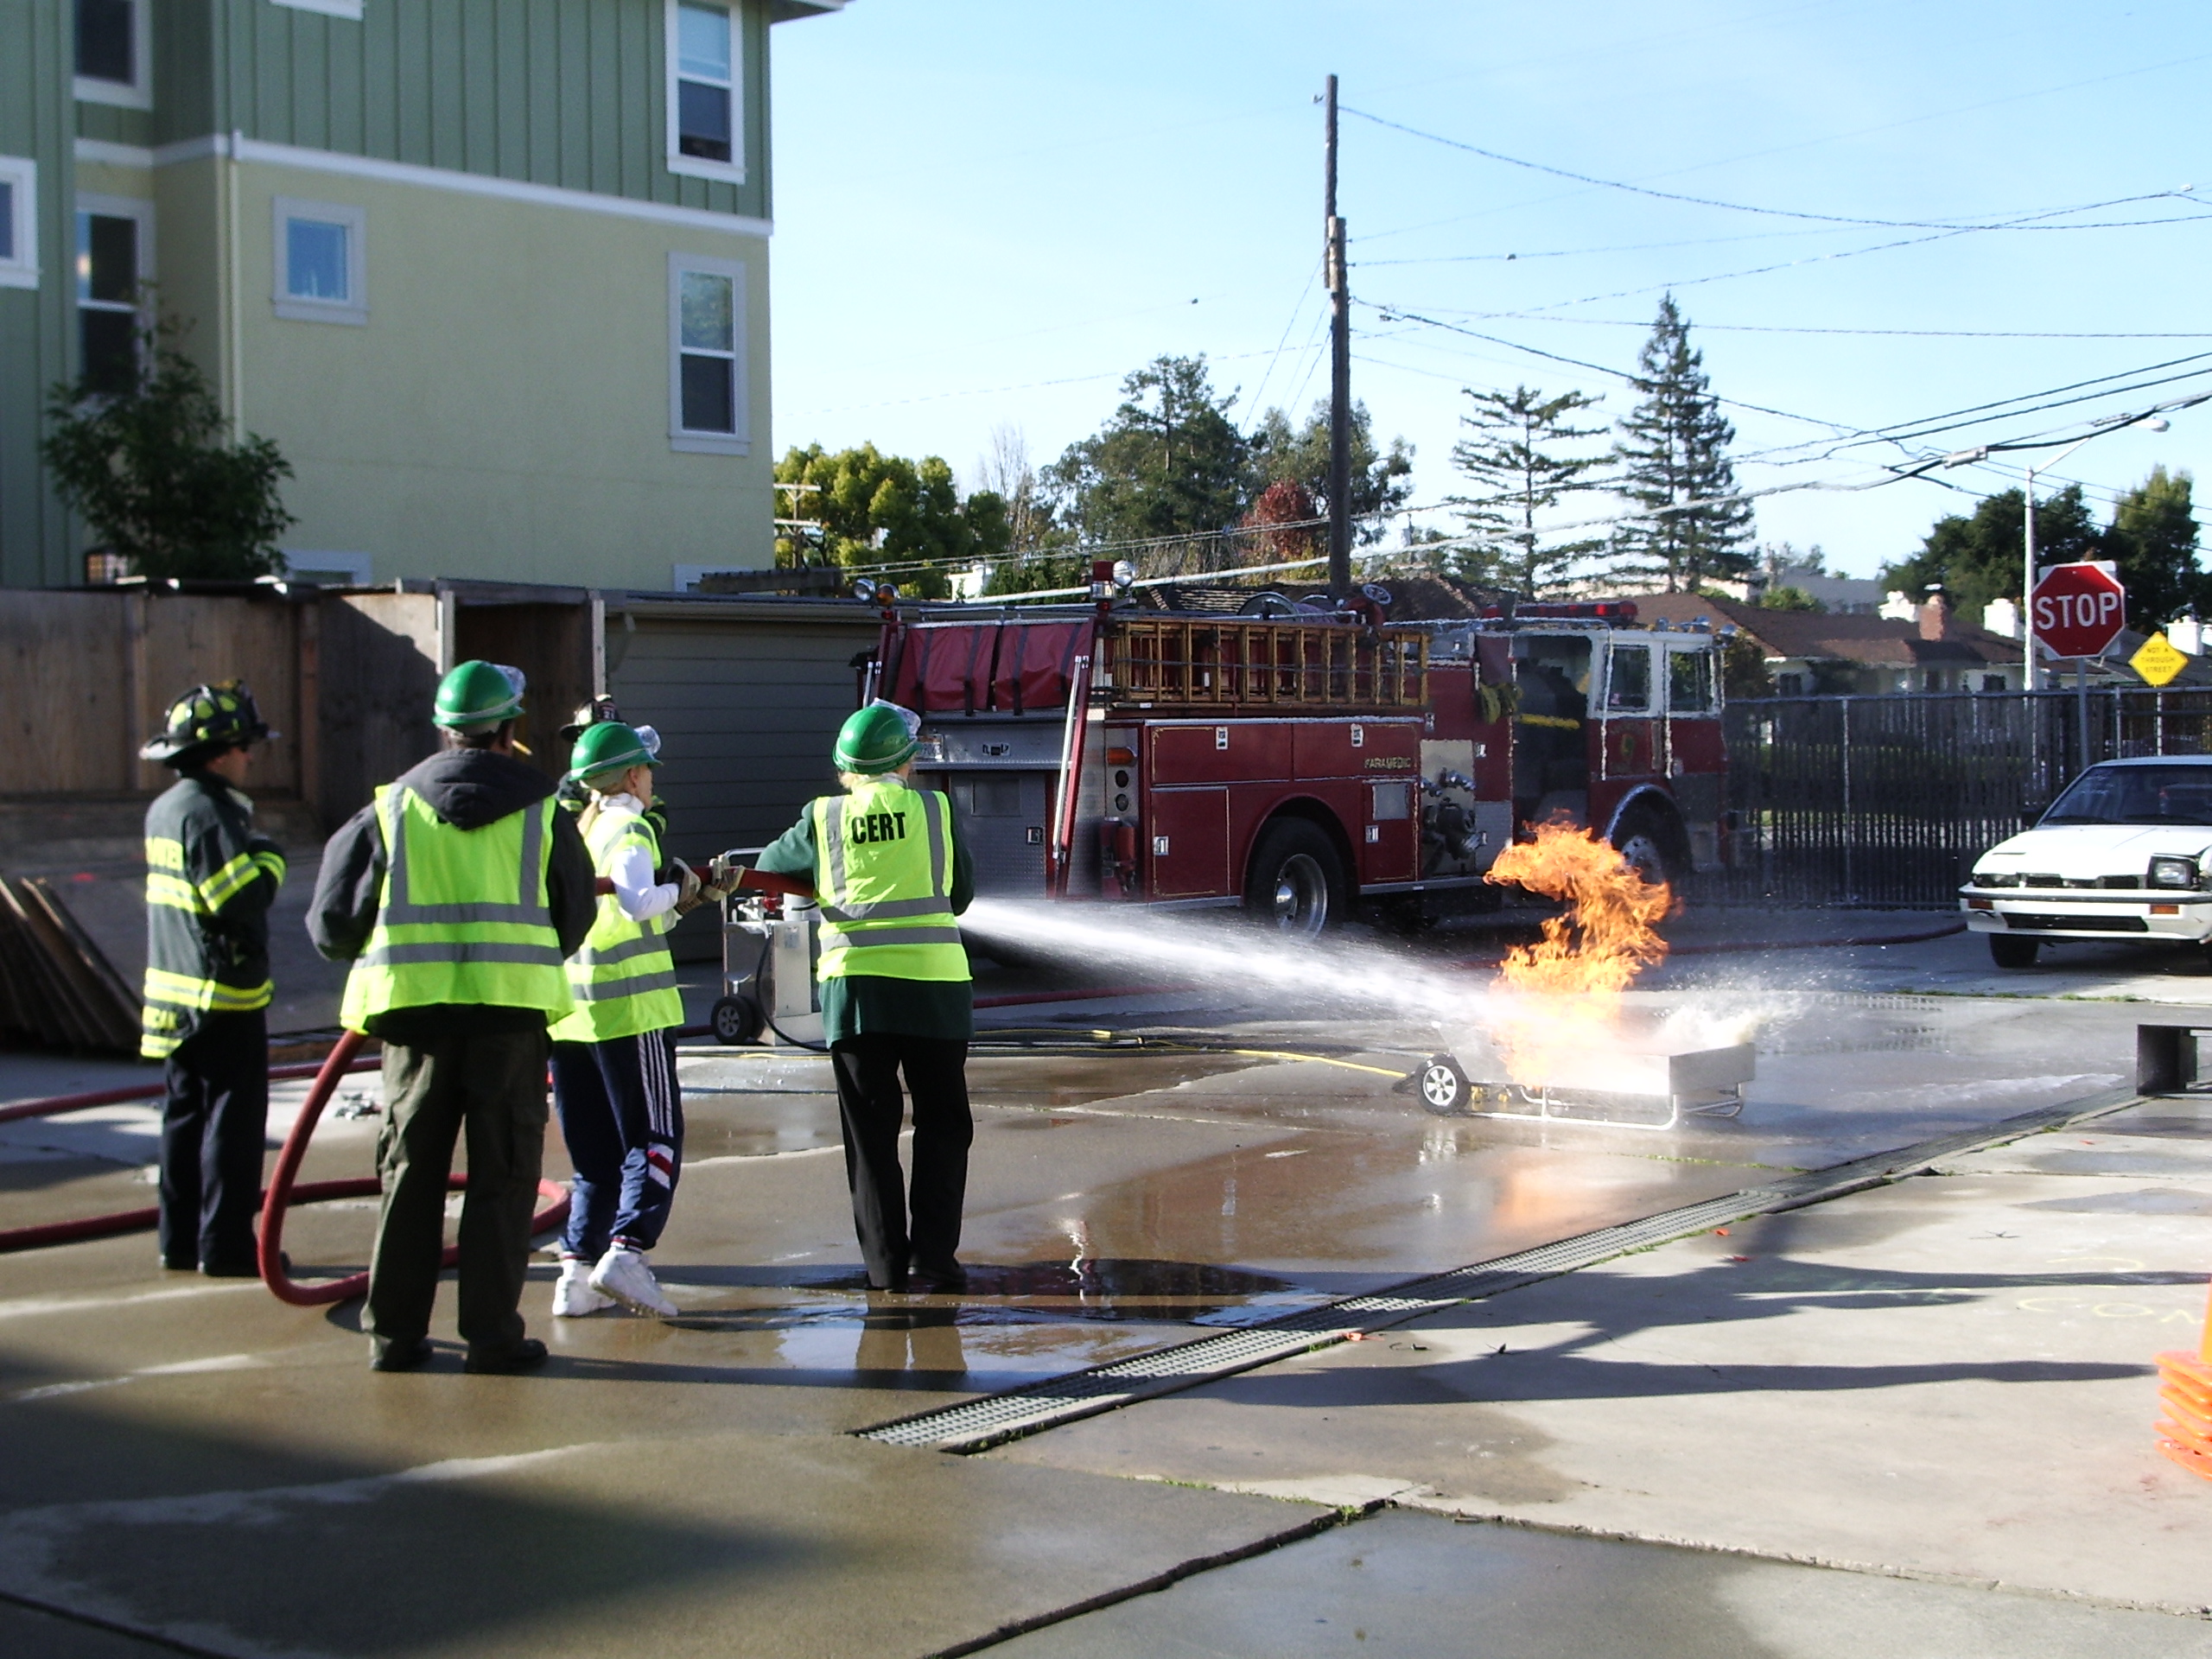 CERT students using fire hose